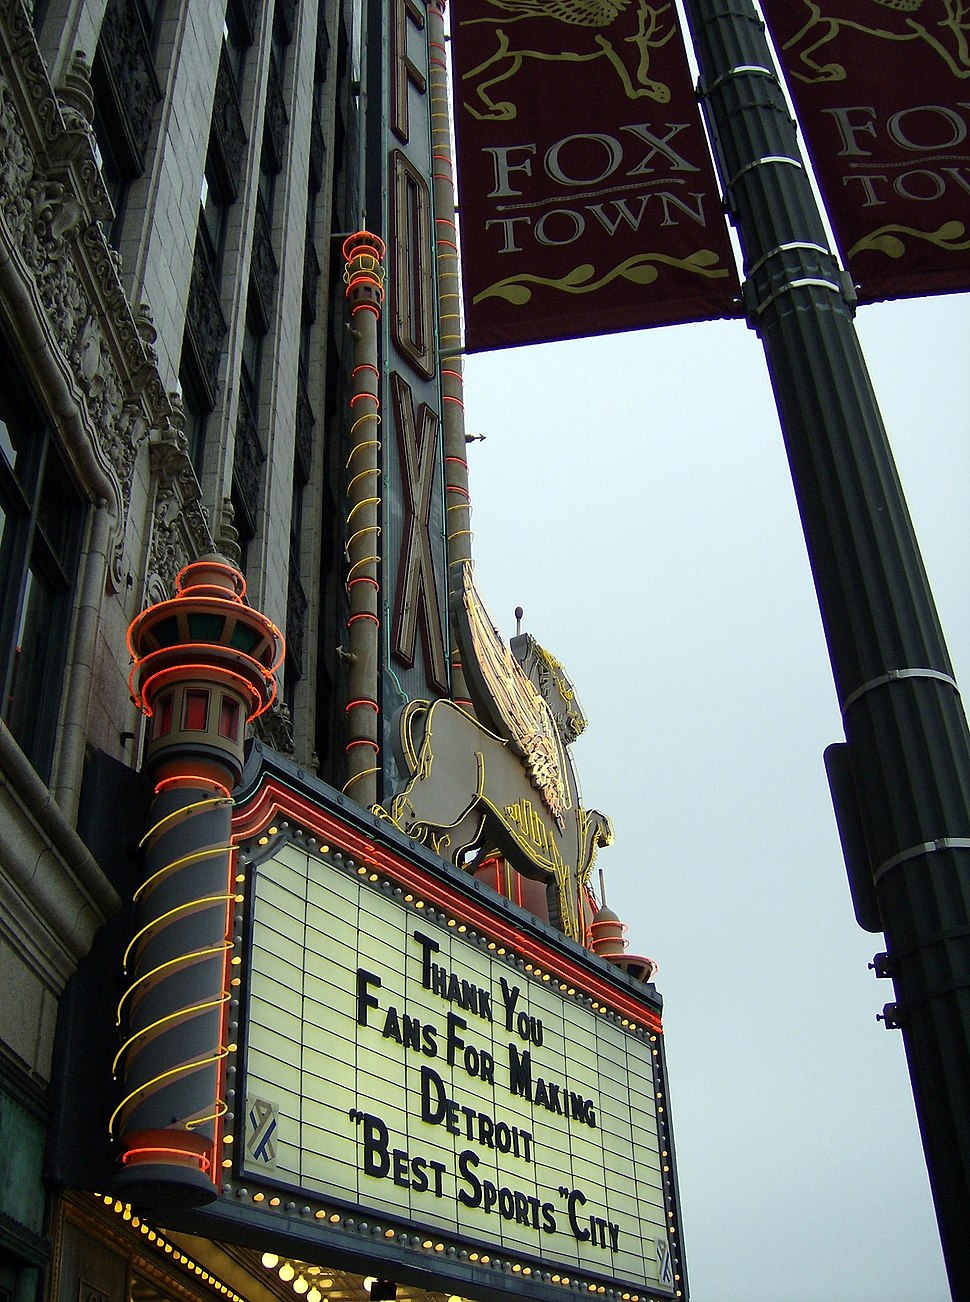 Foxtown banner and marquee, detroit